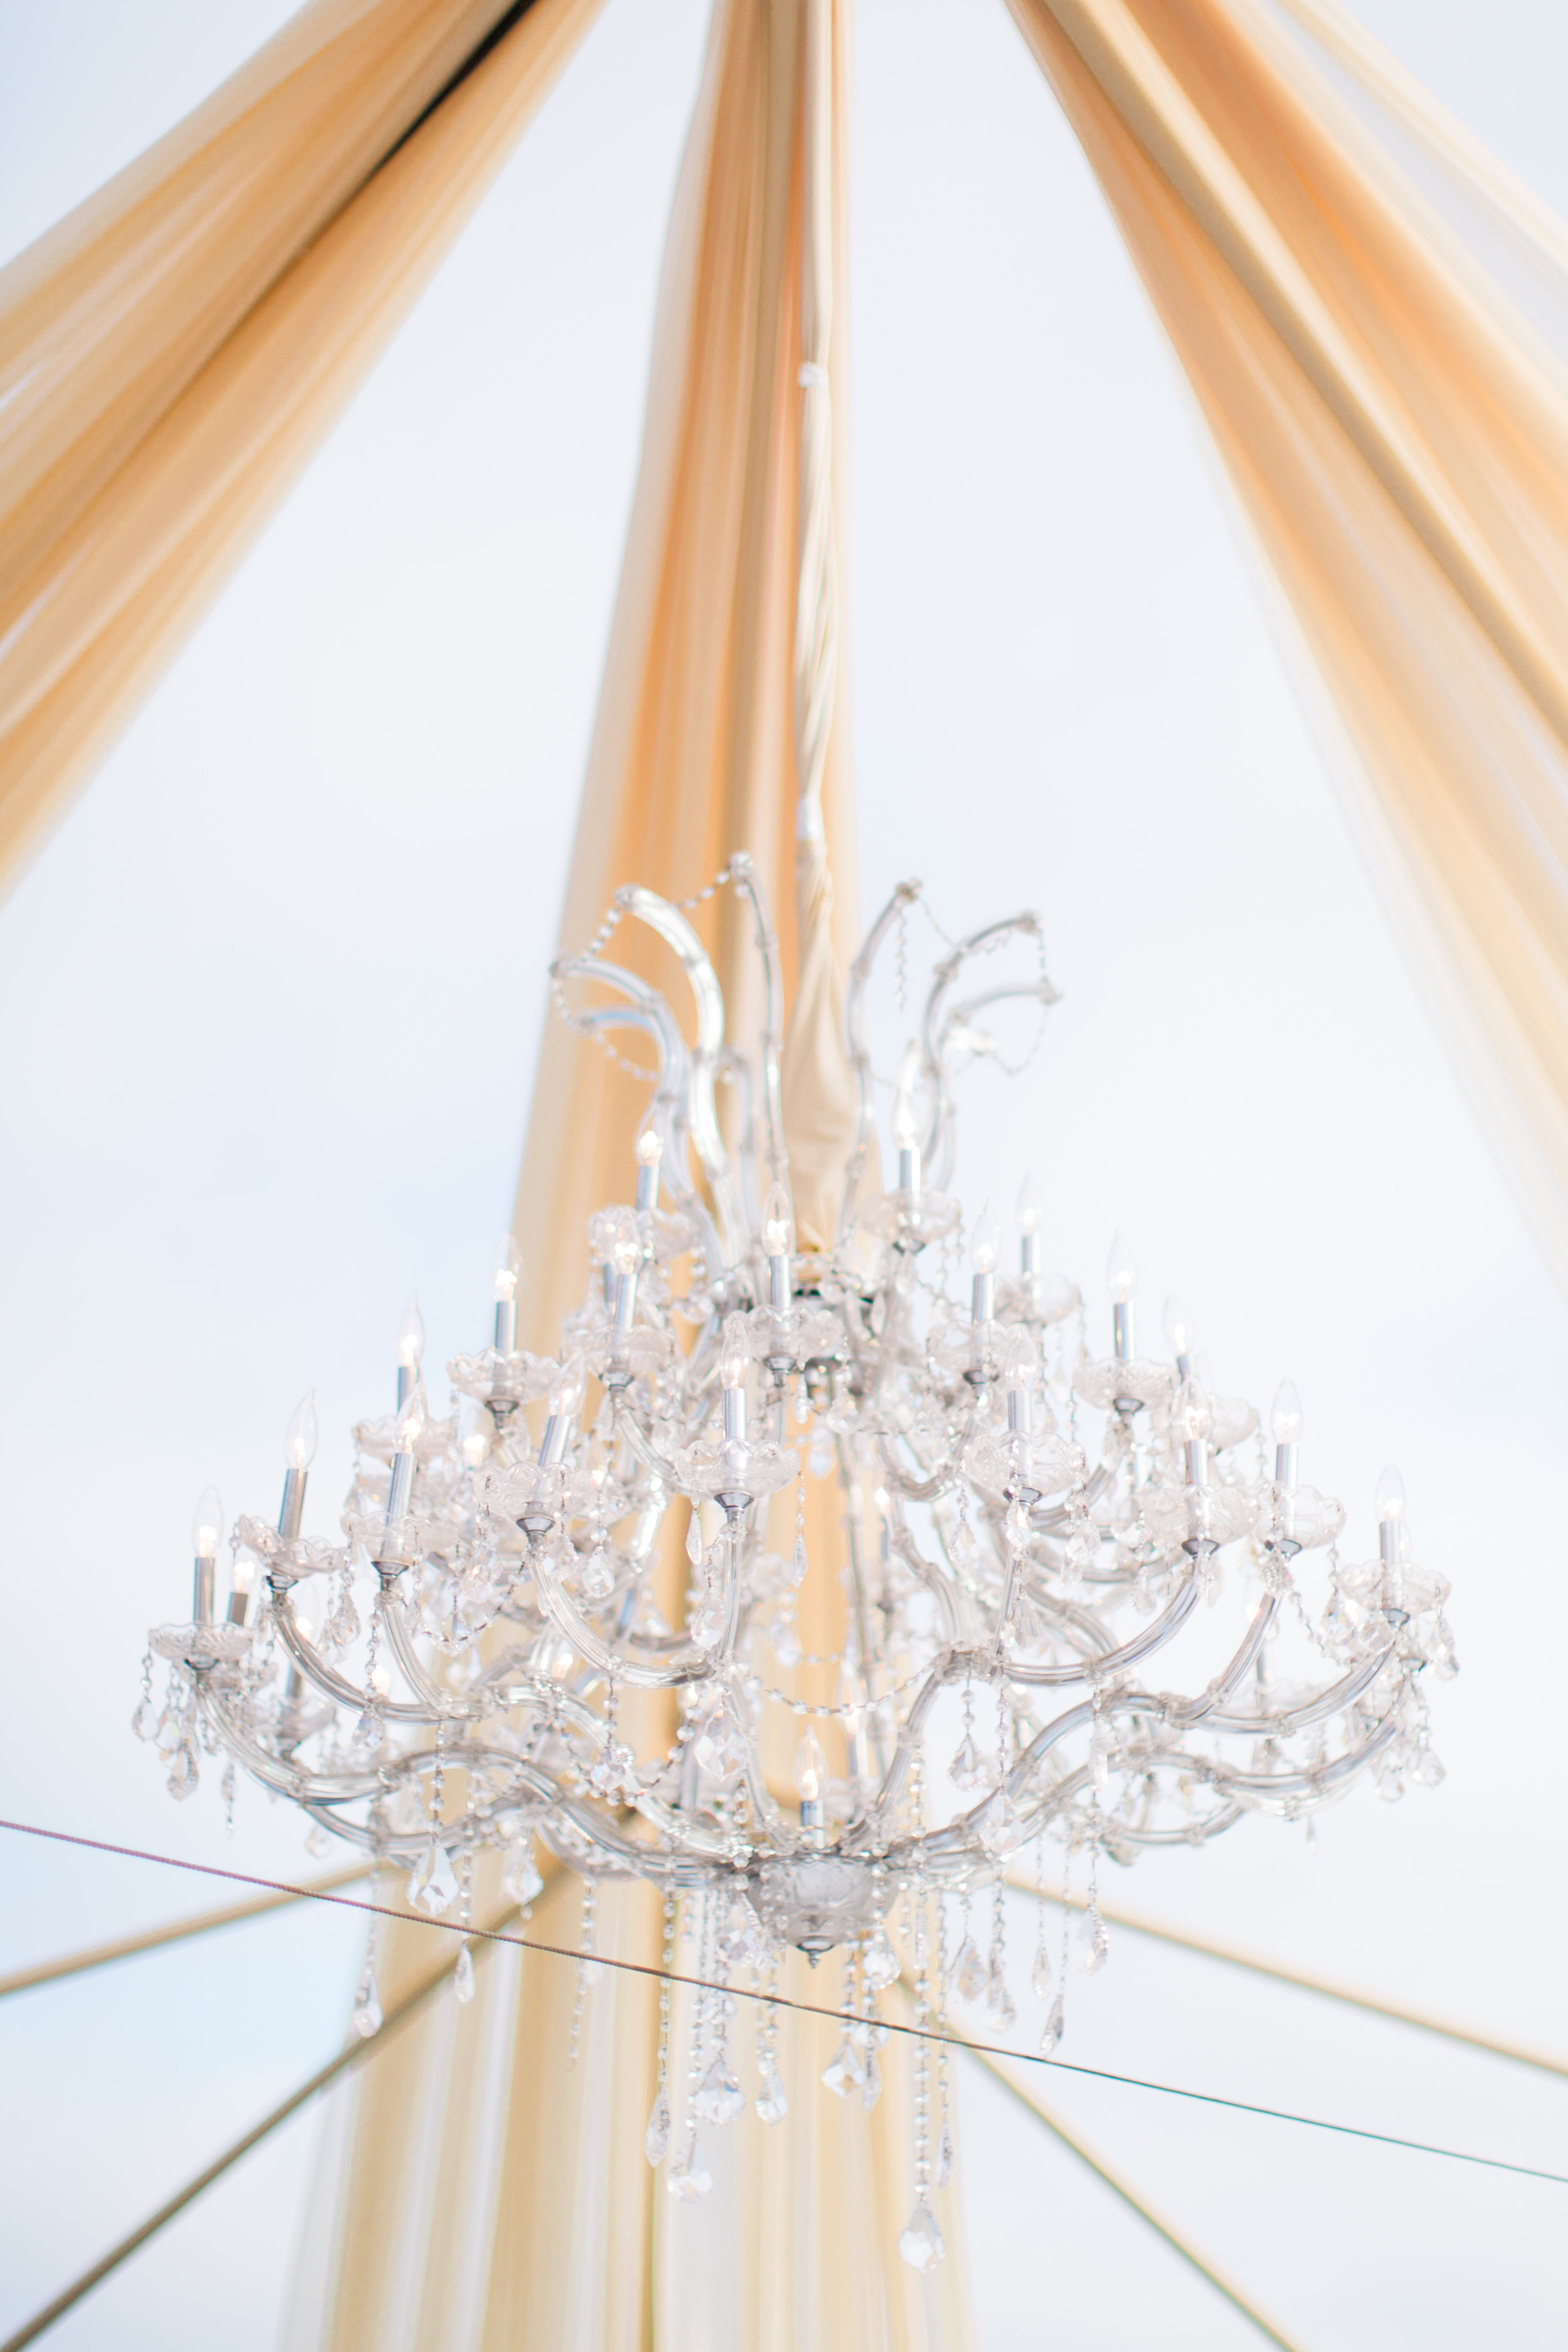 Classic Party Rentals draping, tent, and chandelier